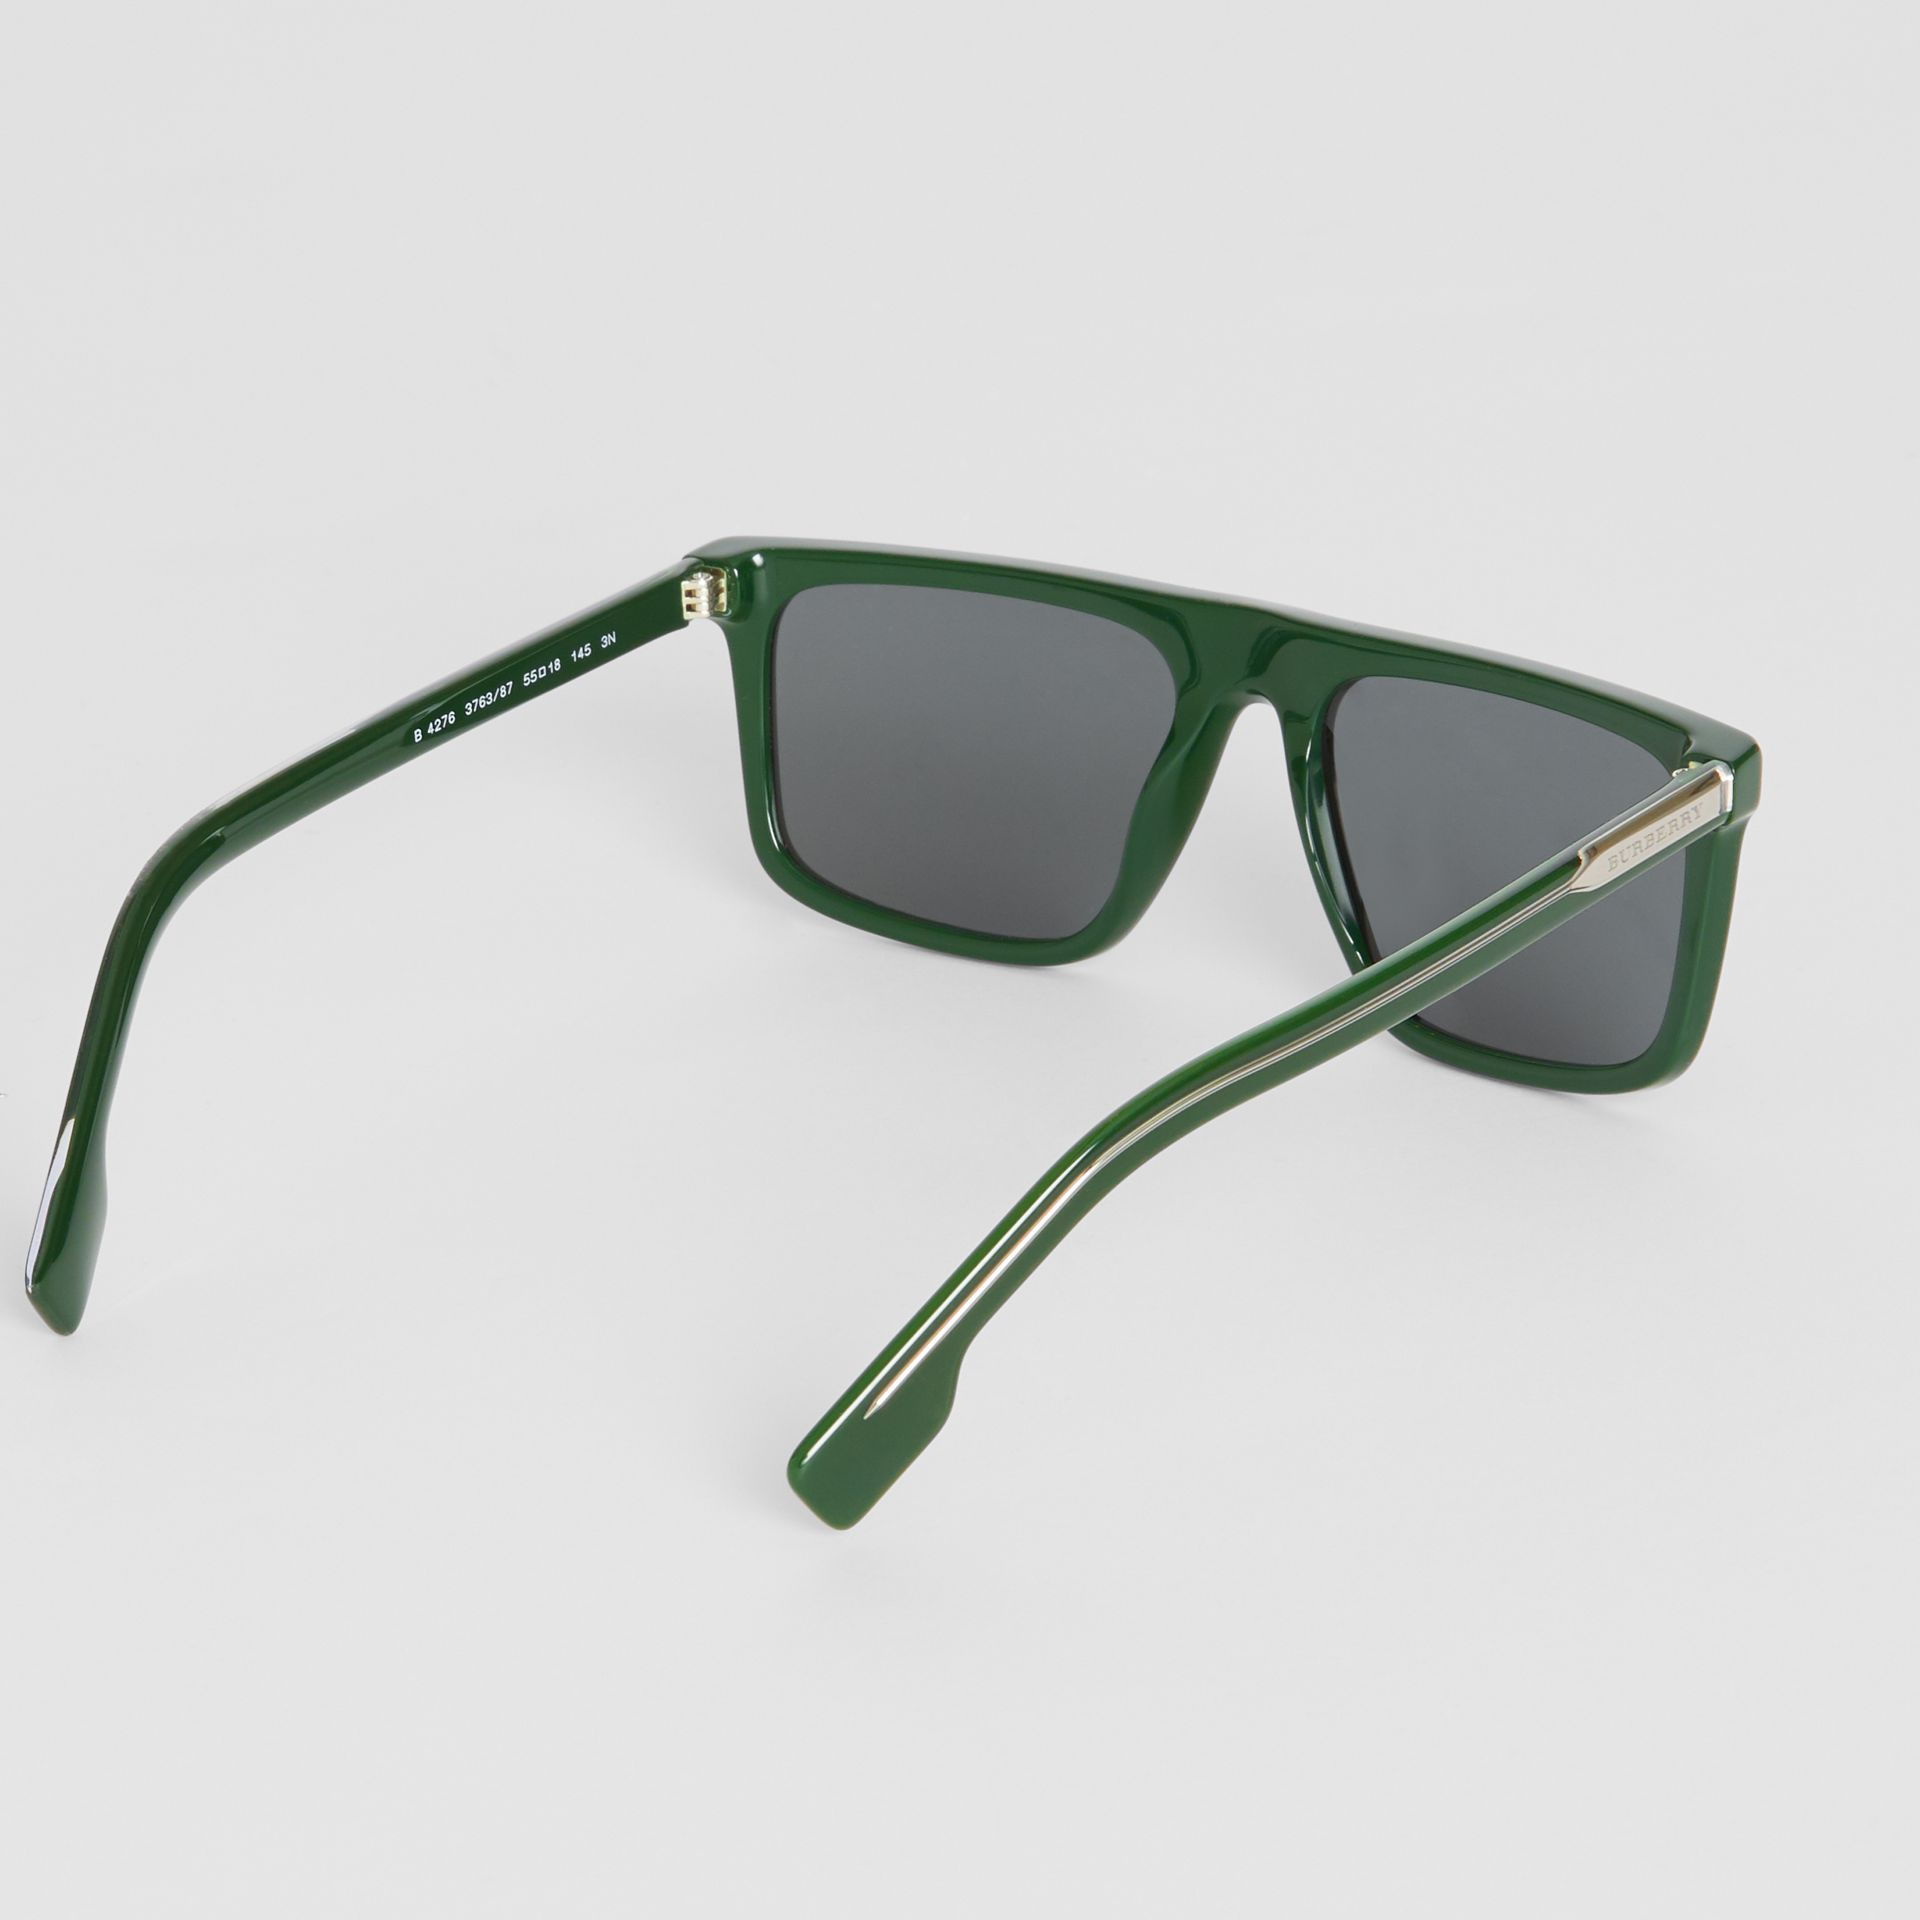 Straight-brow Sunglasses in Green - Men | Burberry - gallery image 3